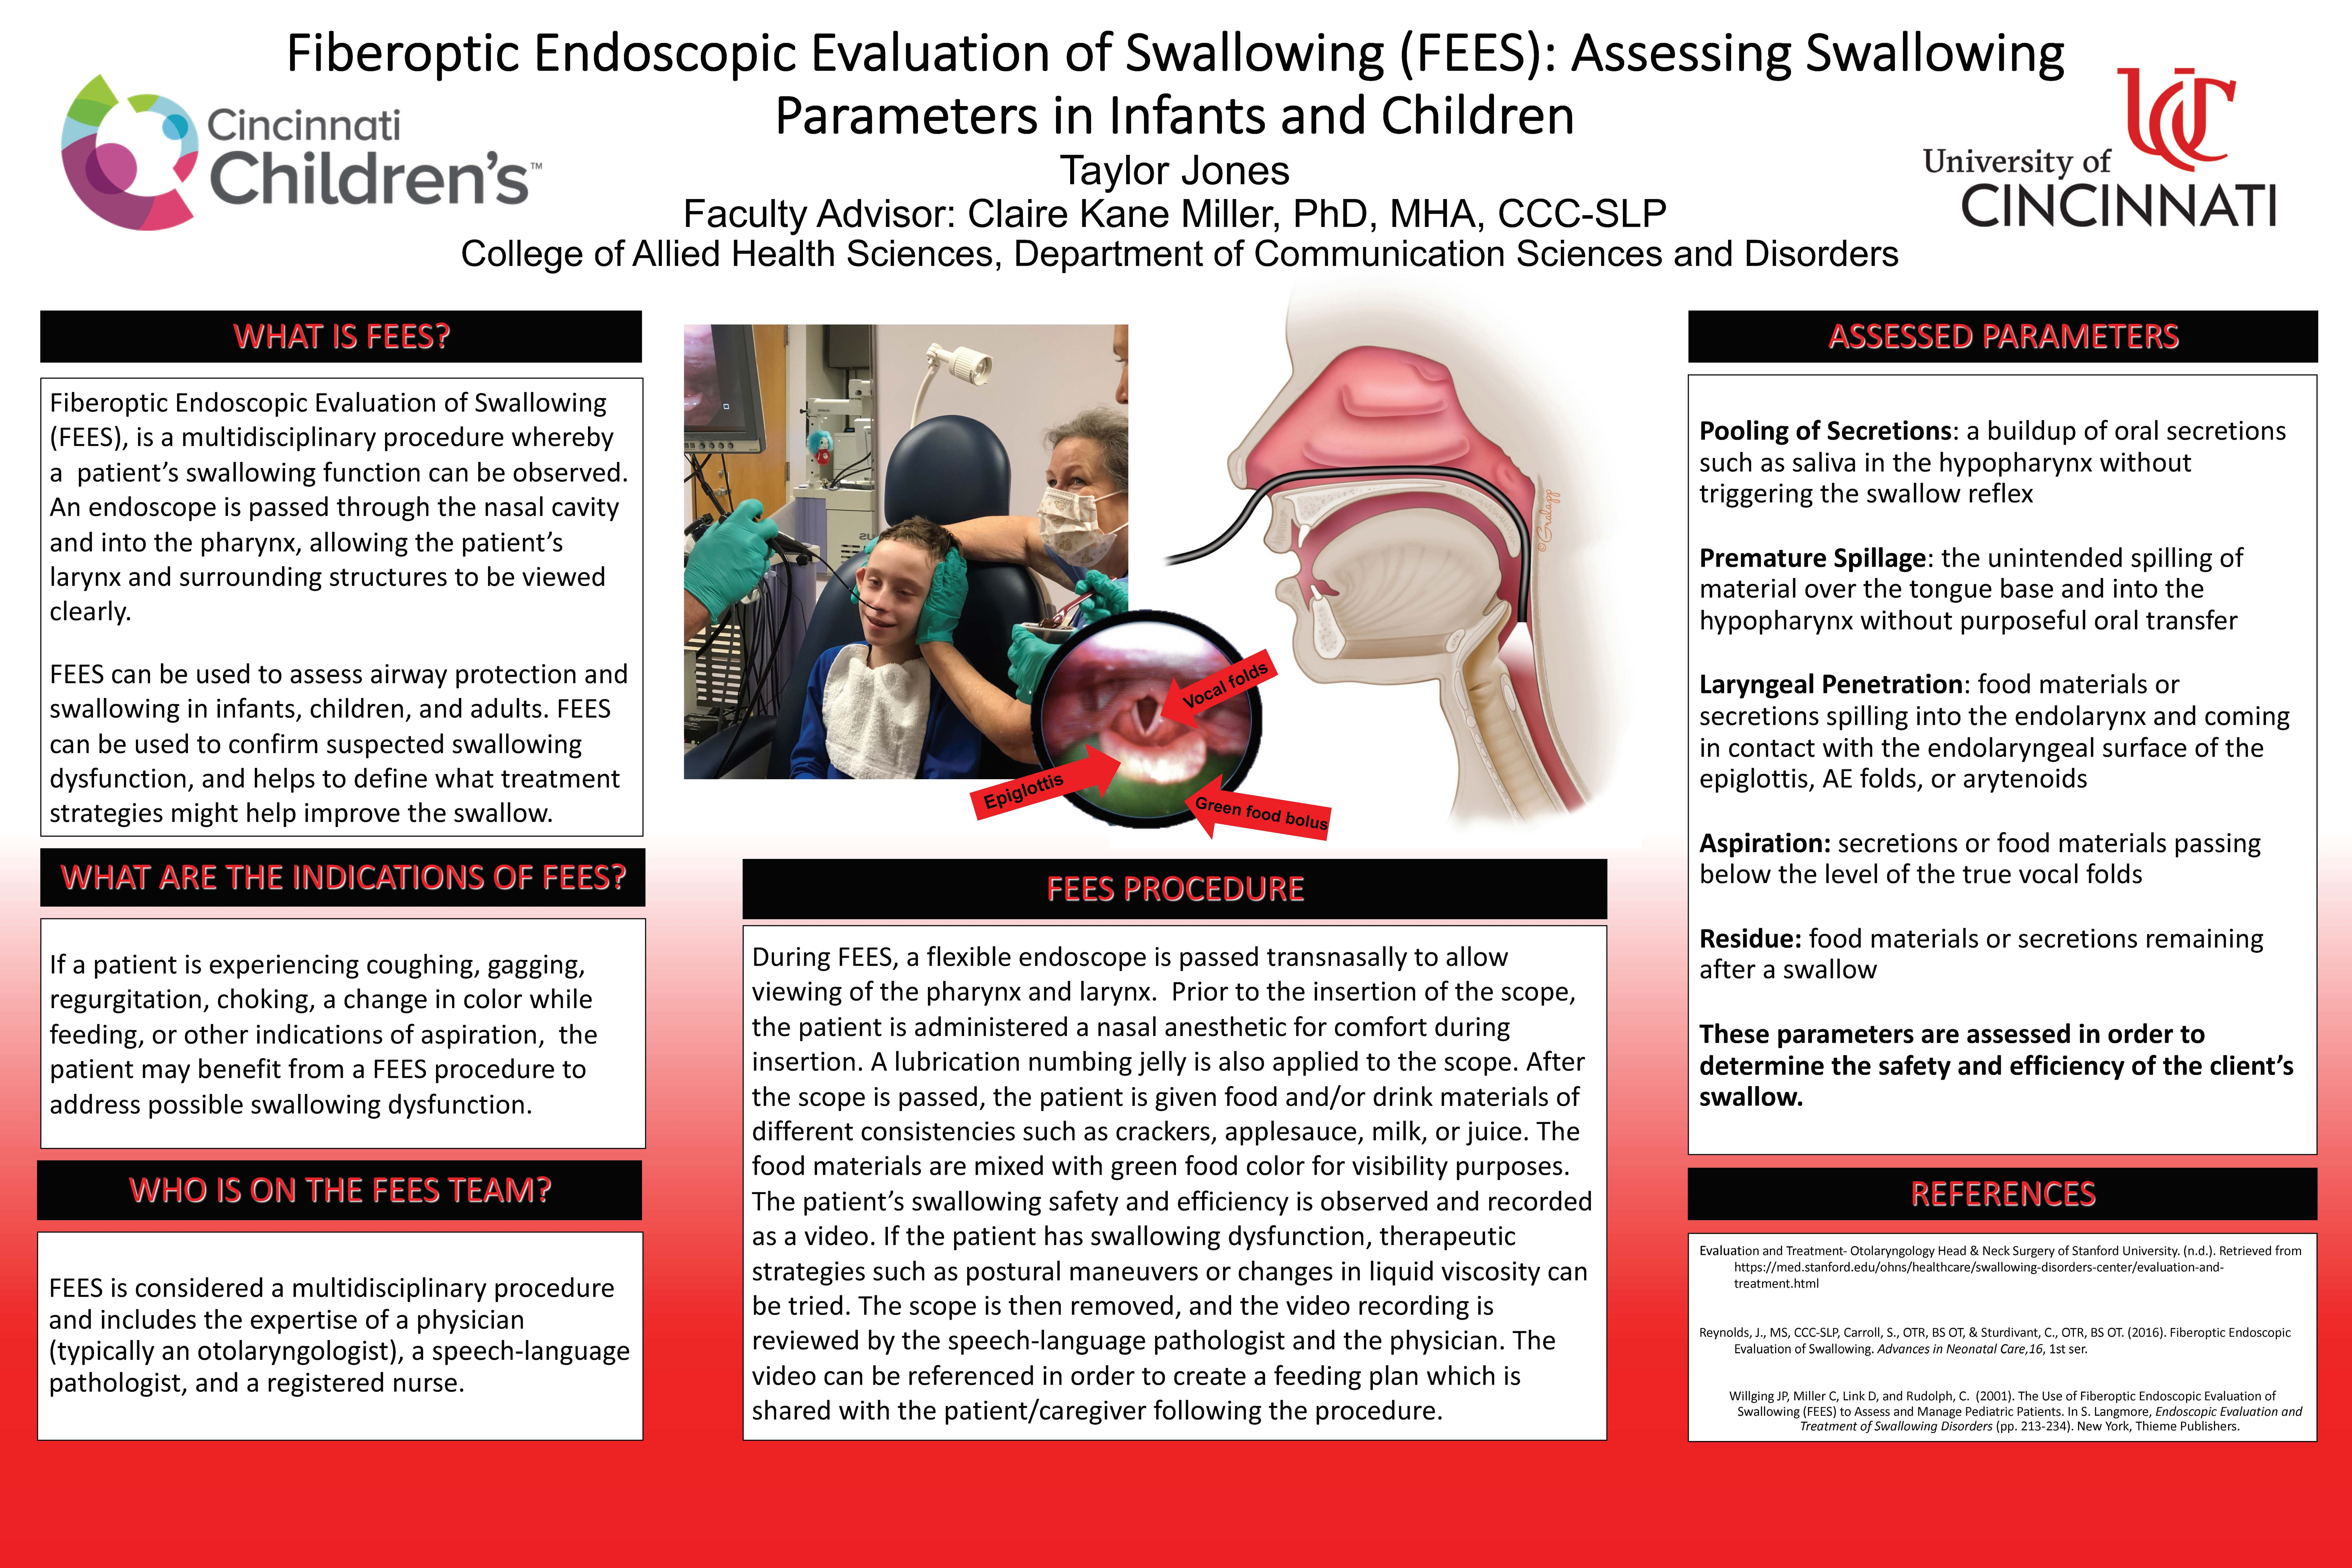 Fiberoptic Endoscopic Evaluation of Swallowing (FEES): Assessing Swallowing in Infants and Children